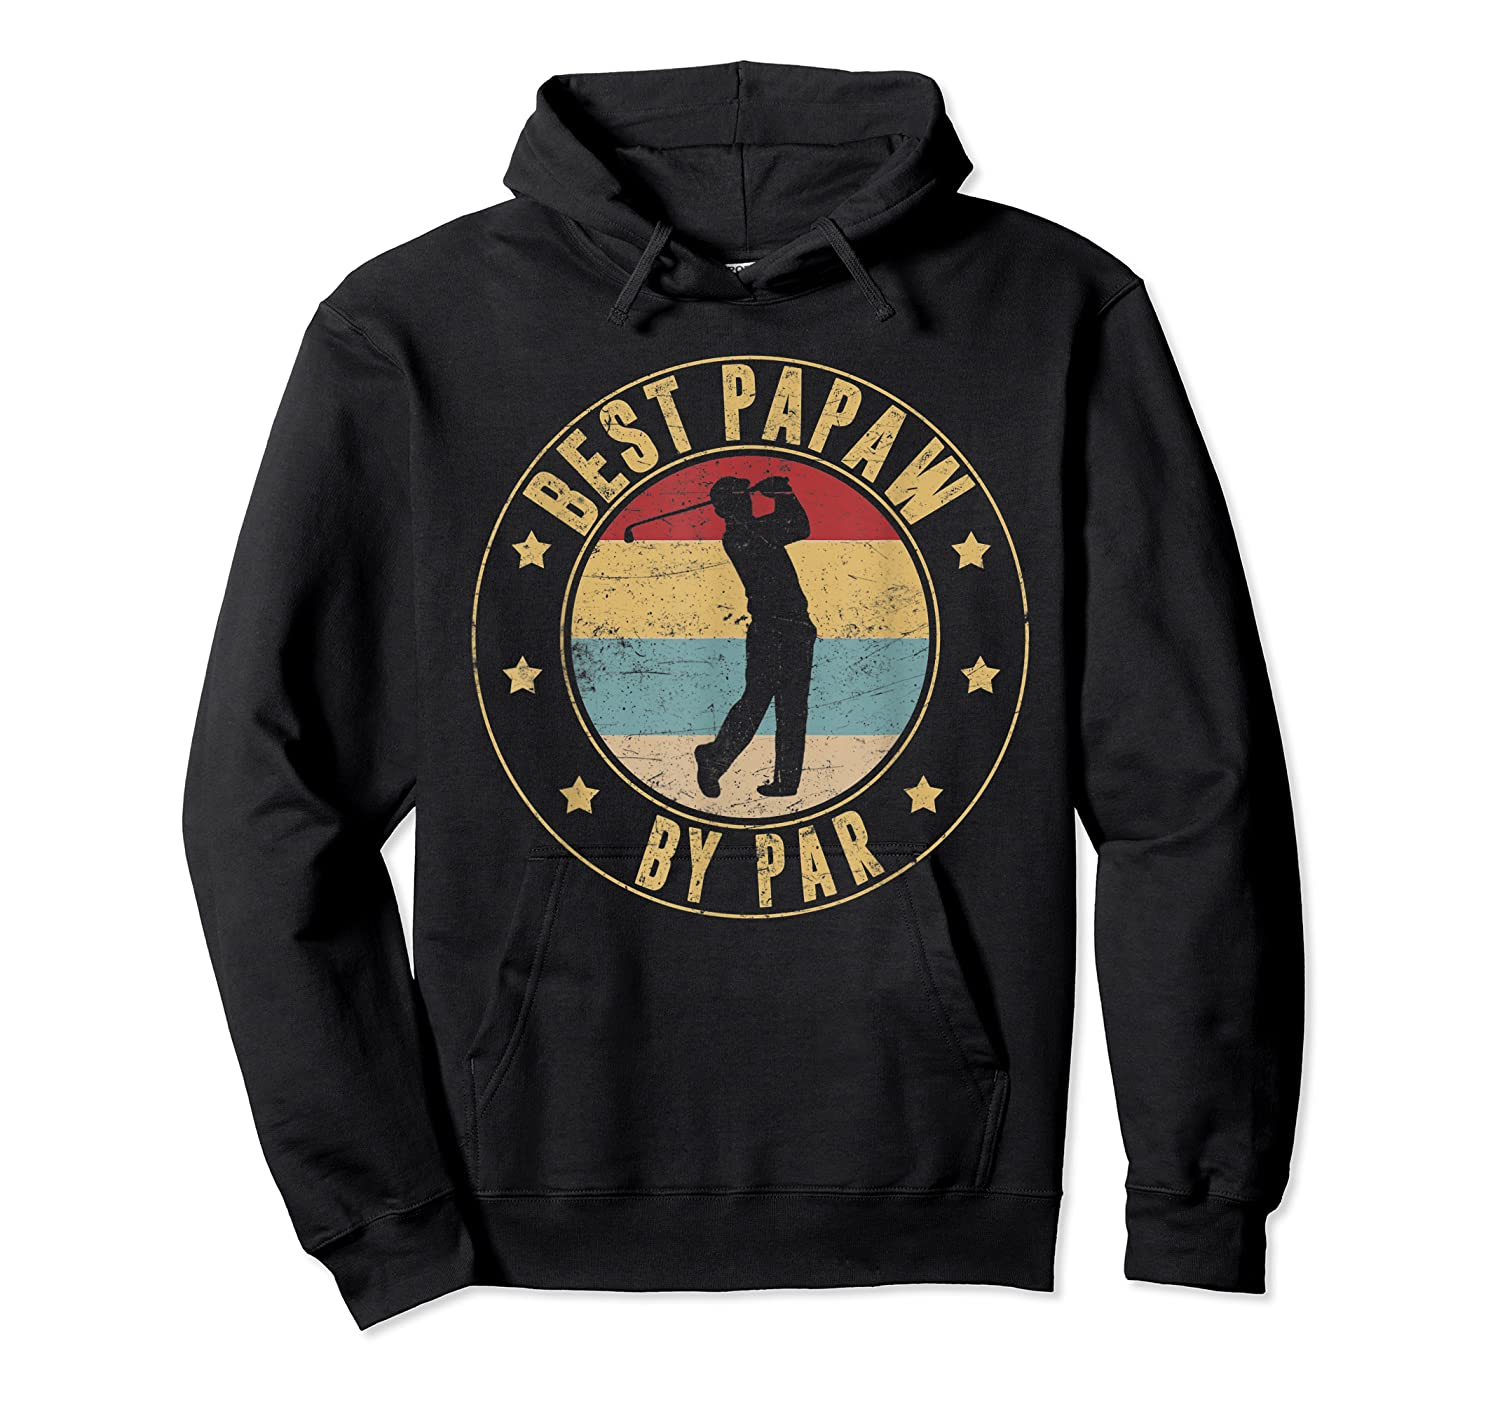 Best Papaw By Par Daddy Father's Day Gifts Golf Shirts Unisex Pullover Hoodie